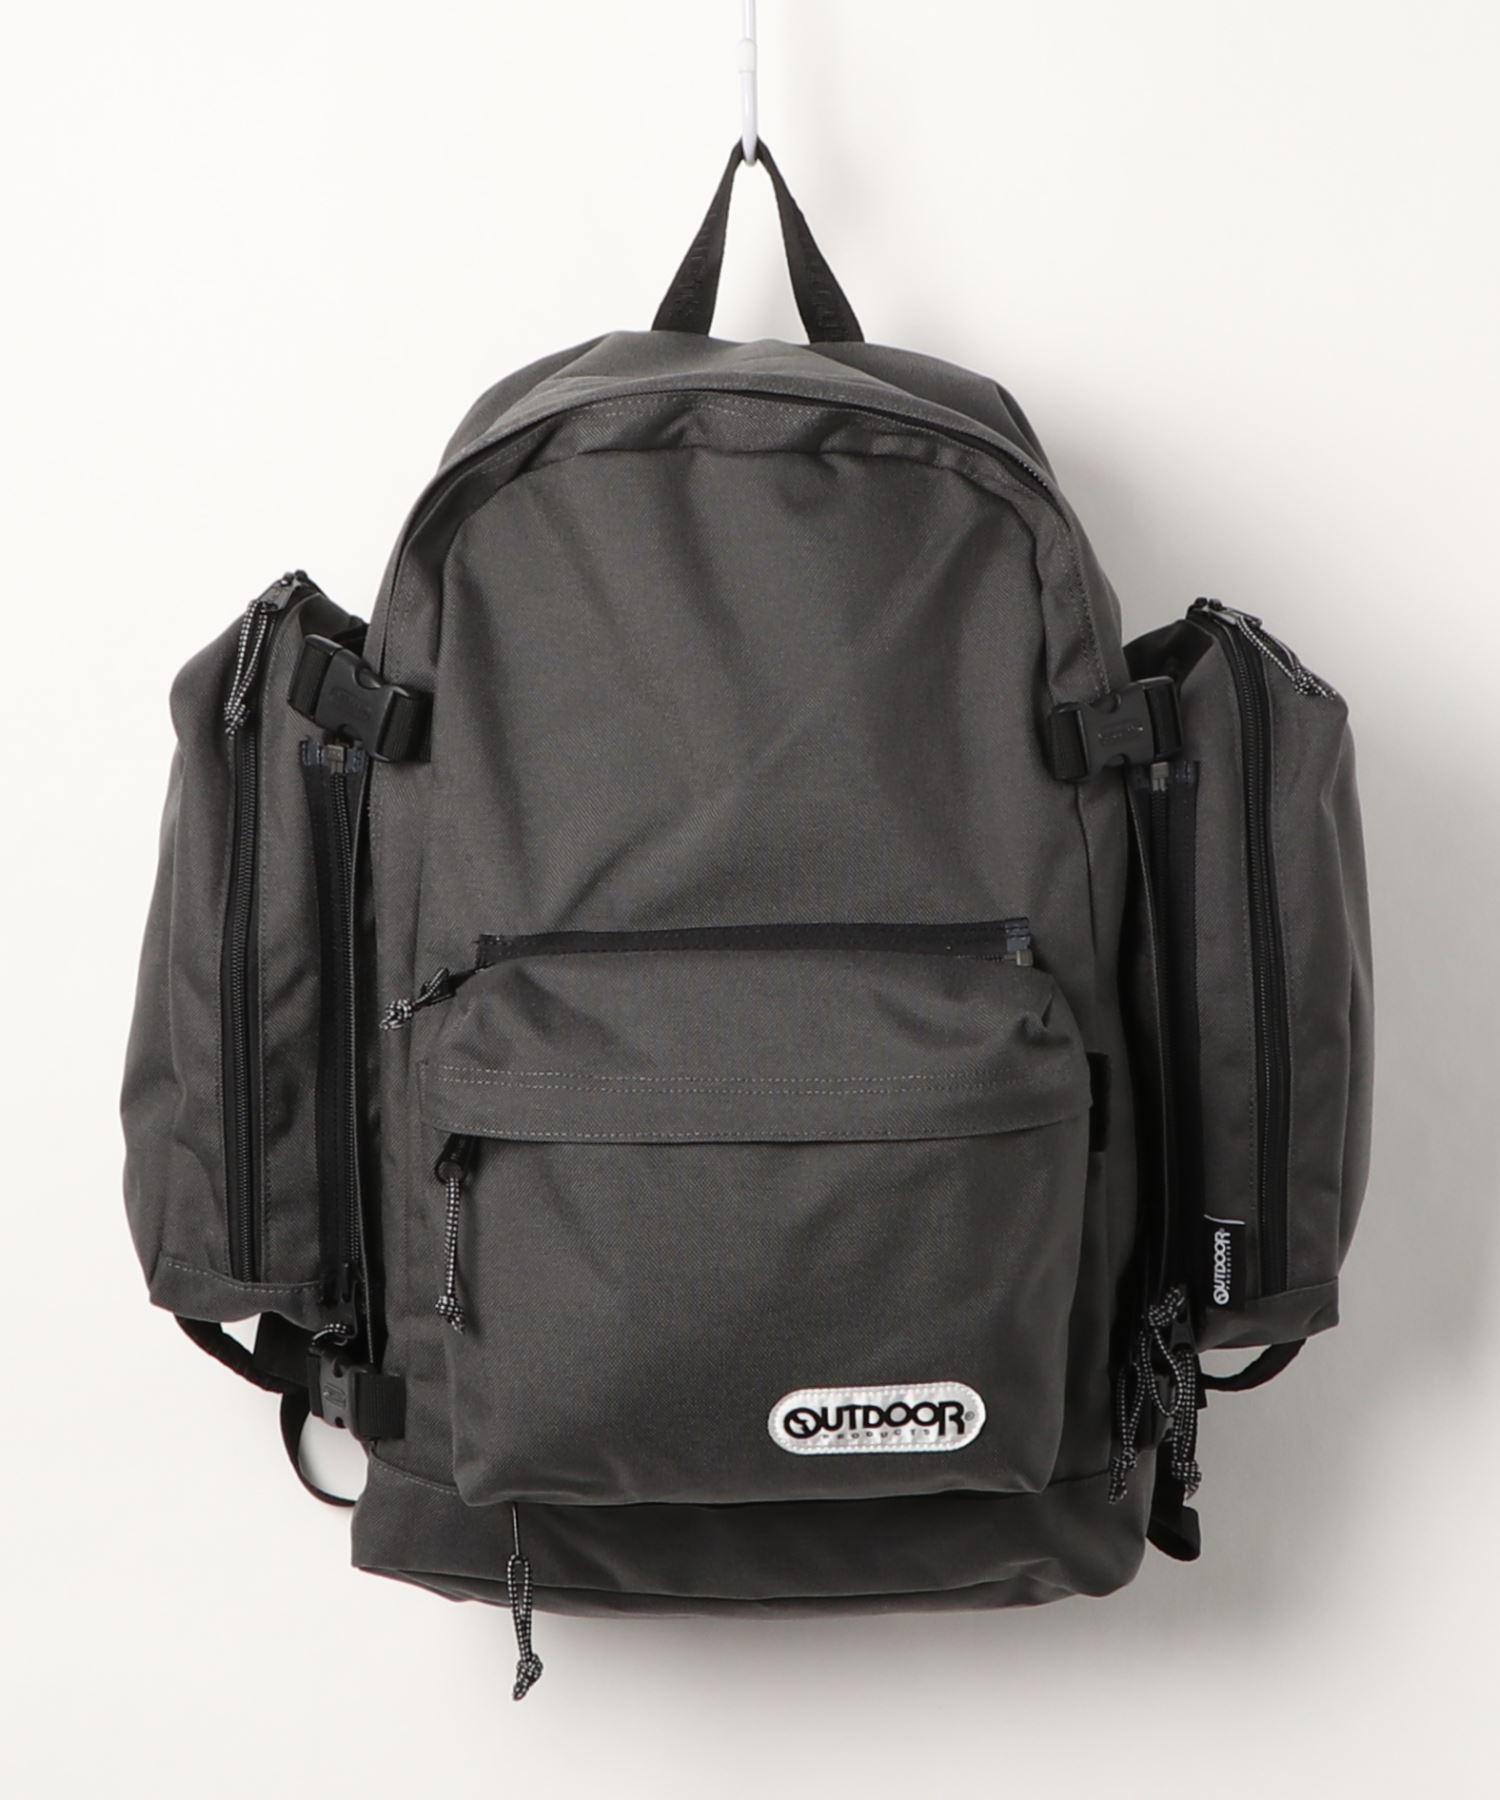 【N.HOLLYWOOD×OUTDOOR PRODUCTS】コラボデイパック バックパック